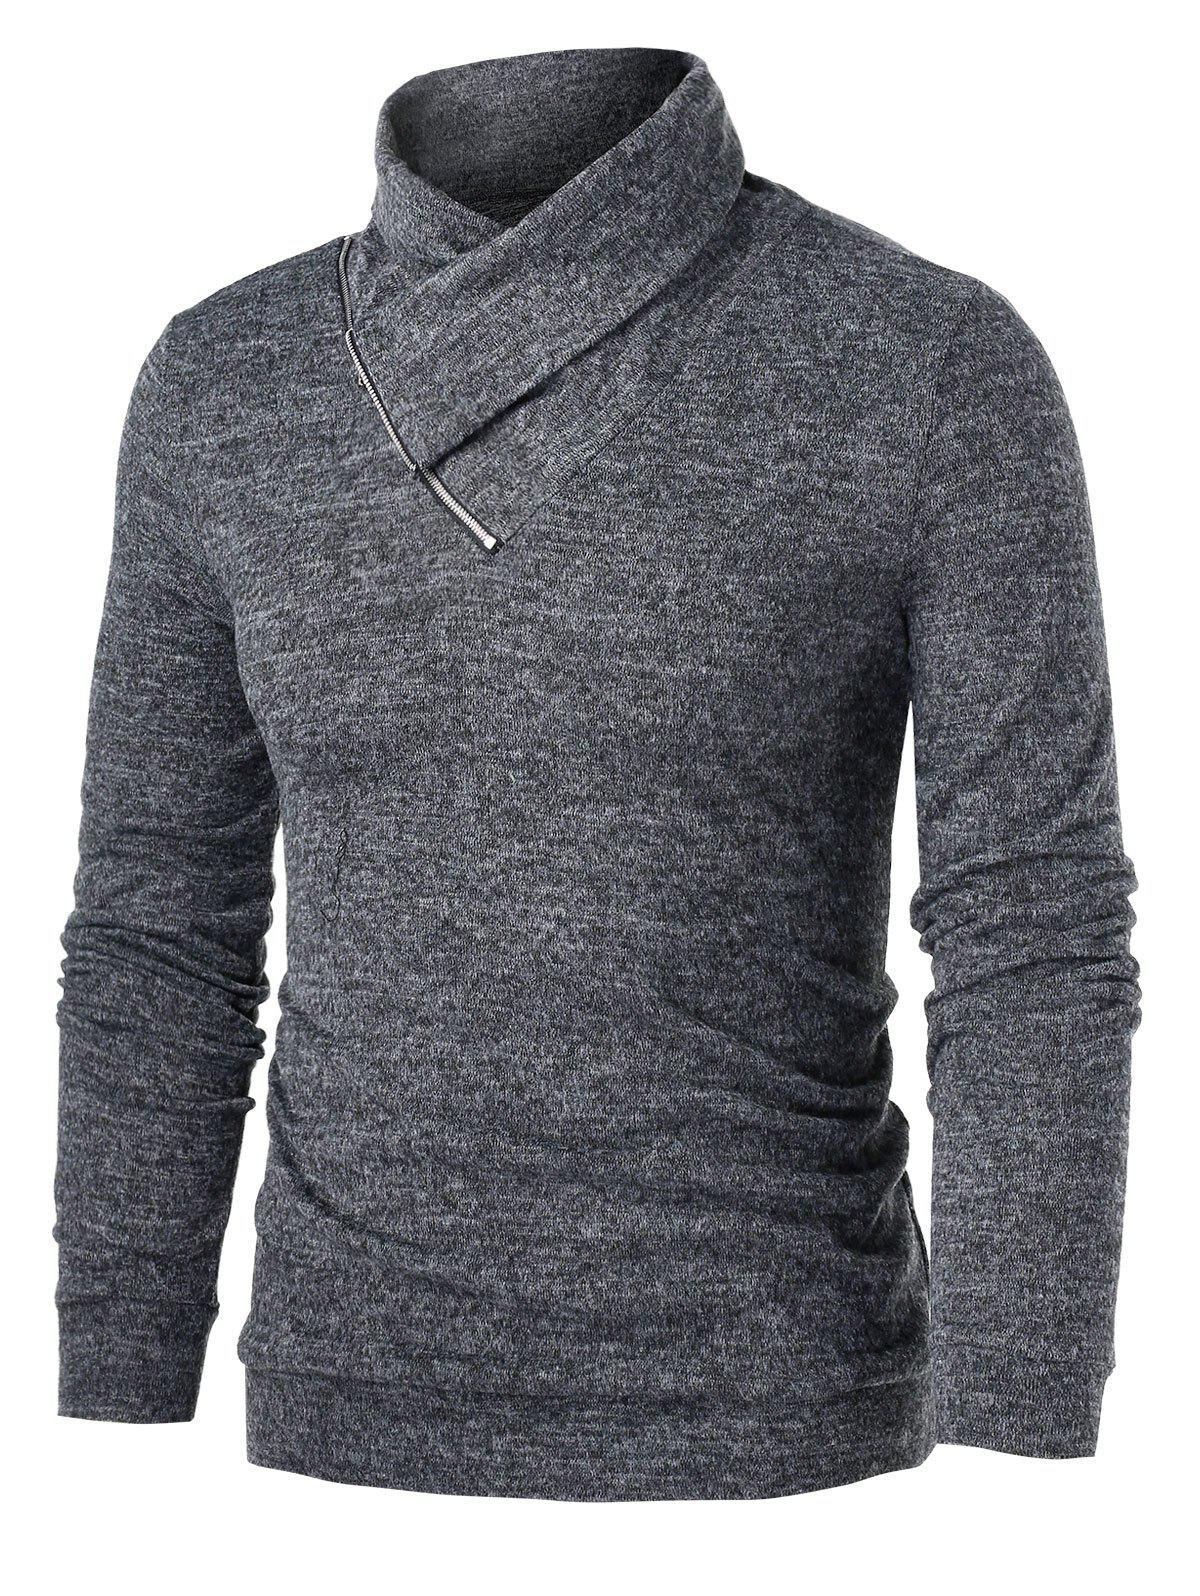 Sale Heathered Quarter Zip Pullover Sweater